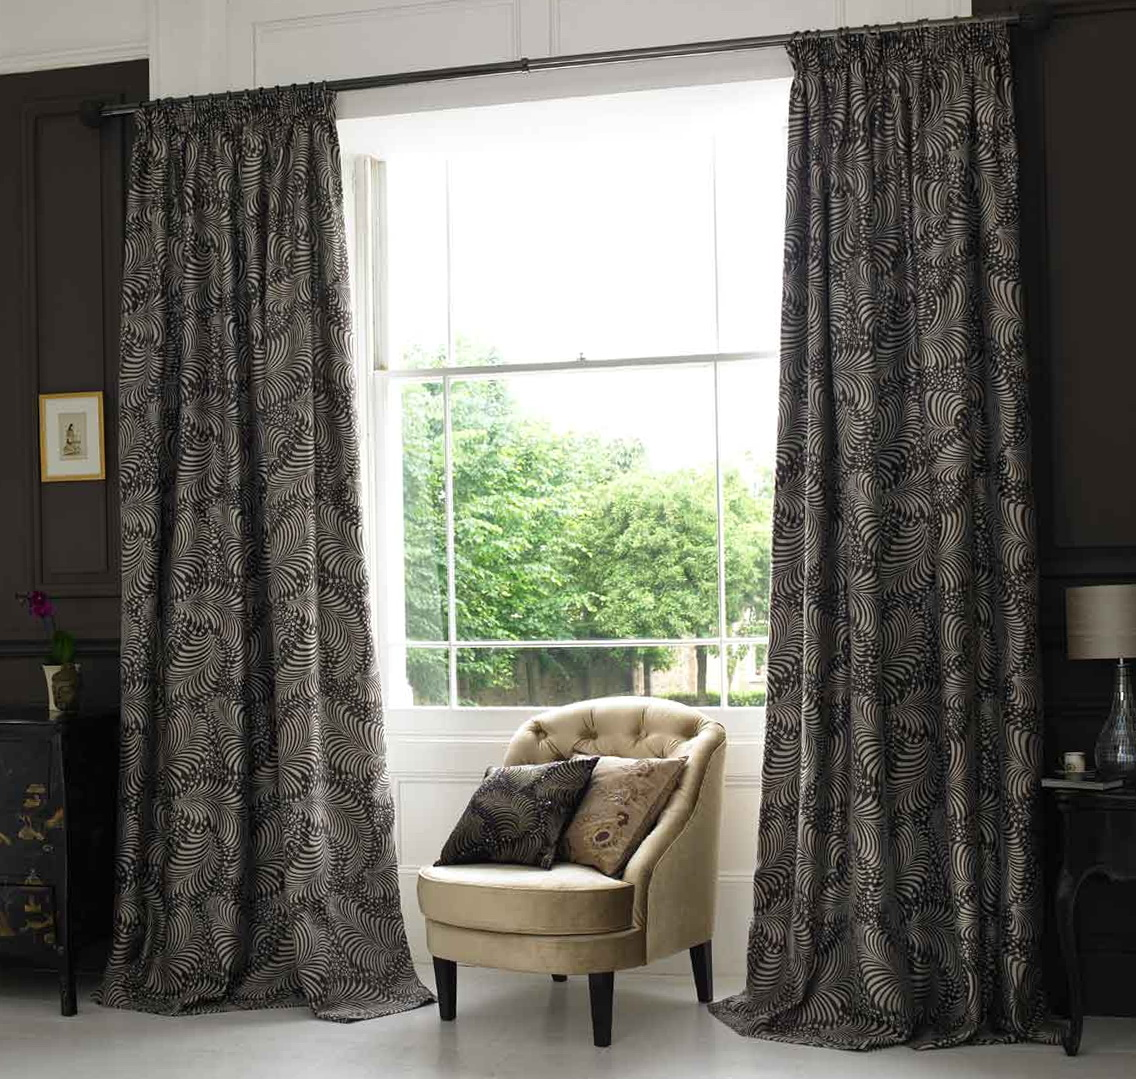 Bedroom Curtain Ideas Windows